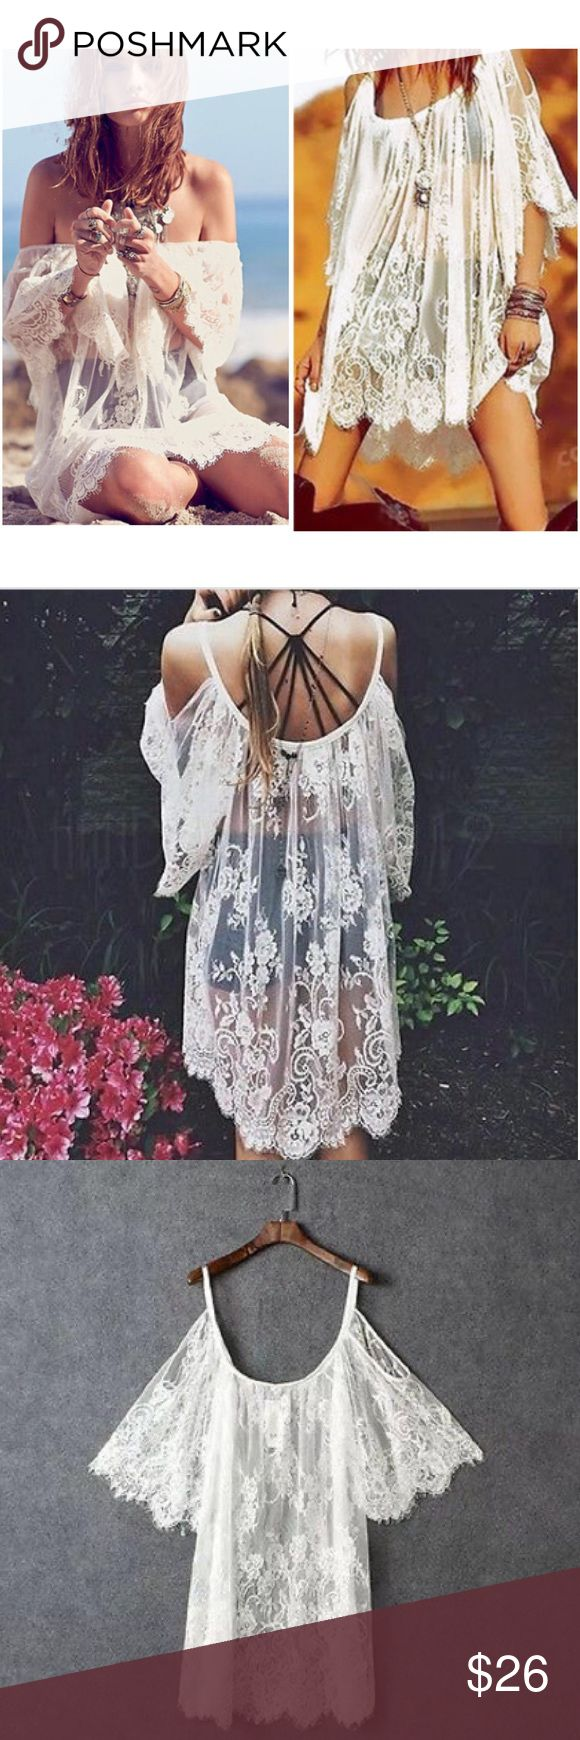 White Boho Lace Swimsuit Coverup NWOT Boho off the shoulder swimsuit coverup. Delicate, sheer lace like material. chic and stylish at the beach or pool party! Can be Worn as a dress with a slip or tank for a layered look. True white. No trades simply sales only Boutique Swim Coverups